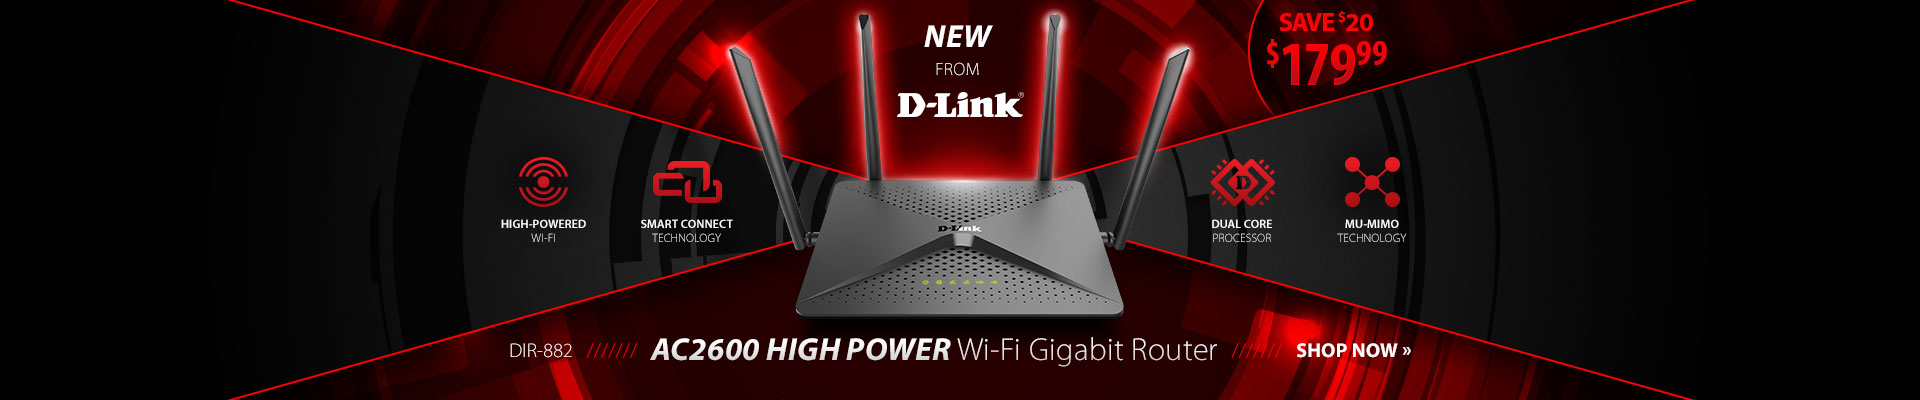 D-Link AC2600 Router